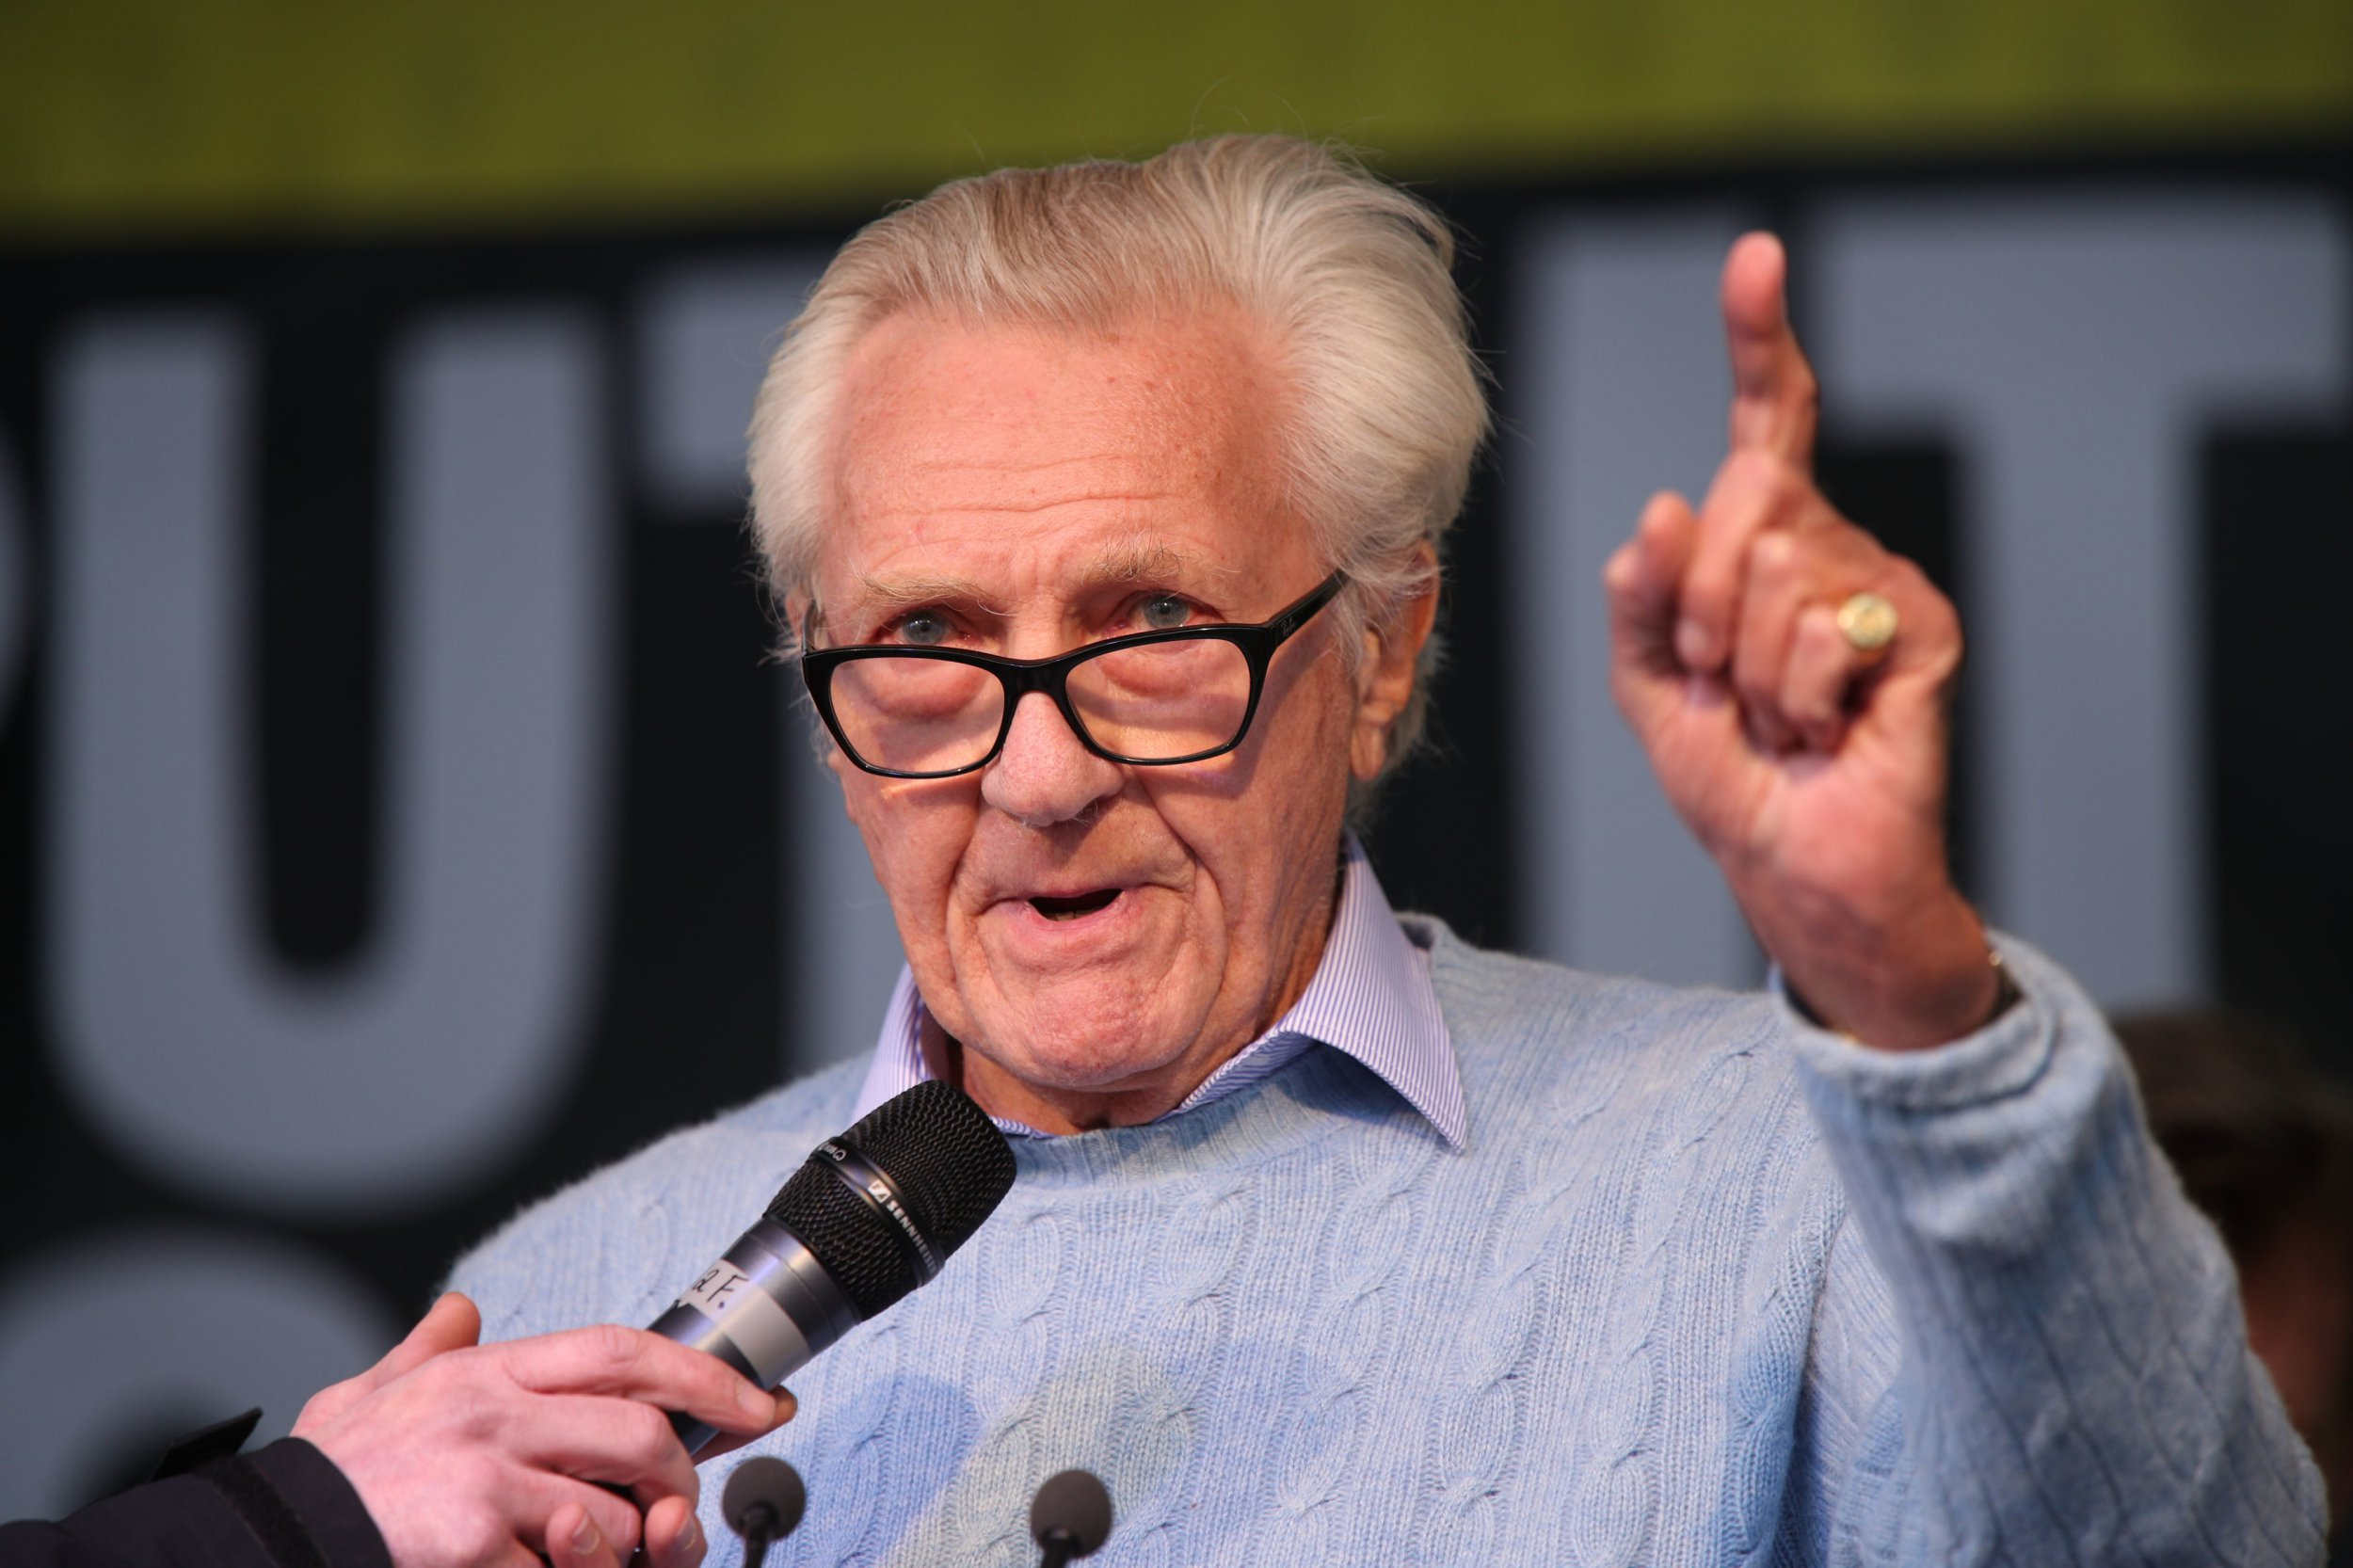 Lord Heseltine loses Tory whip after saying he would vote Lib Dem